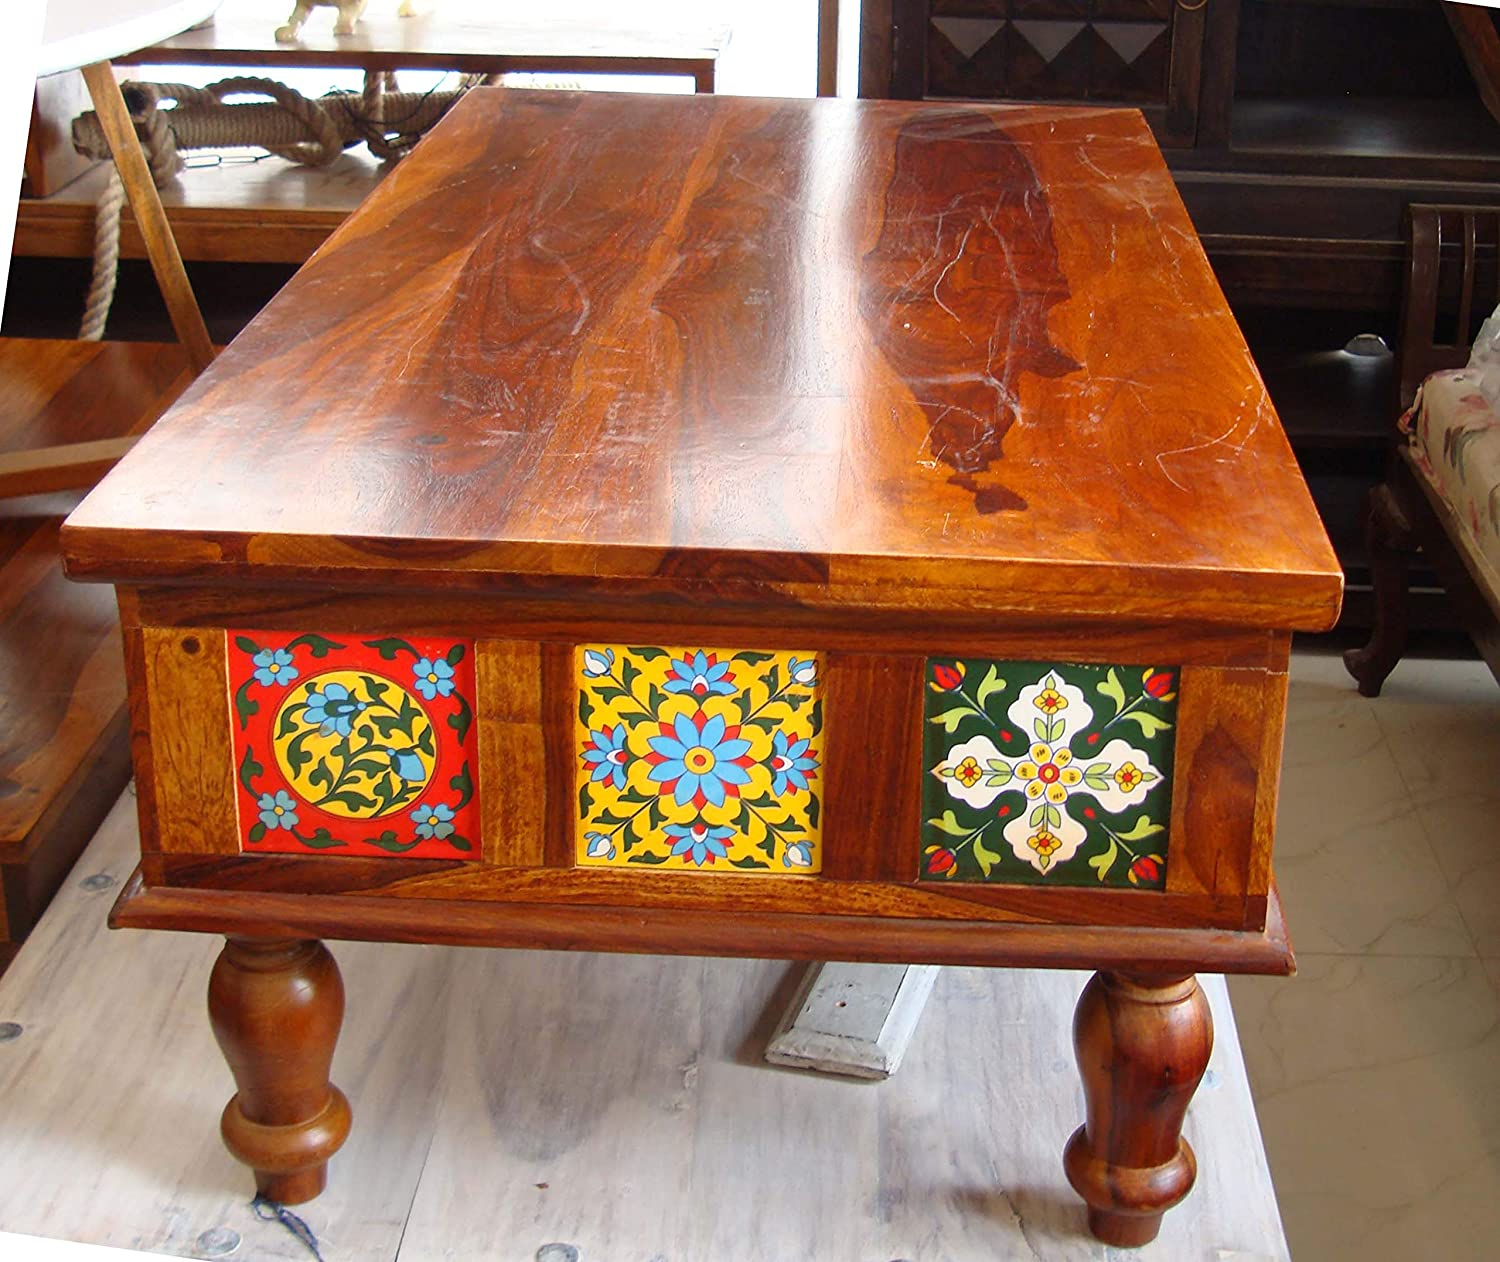 Solid Rosewood (Sheesham) Traditional Antique Look Big Size Coffee Table Center Table 4 x 2 Feet (18x48x30) Inch